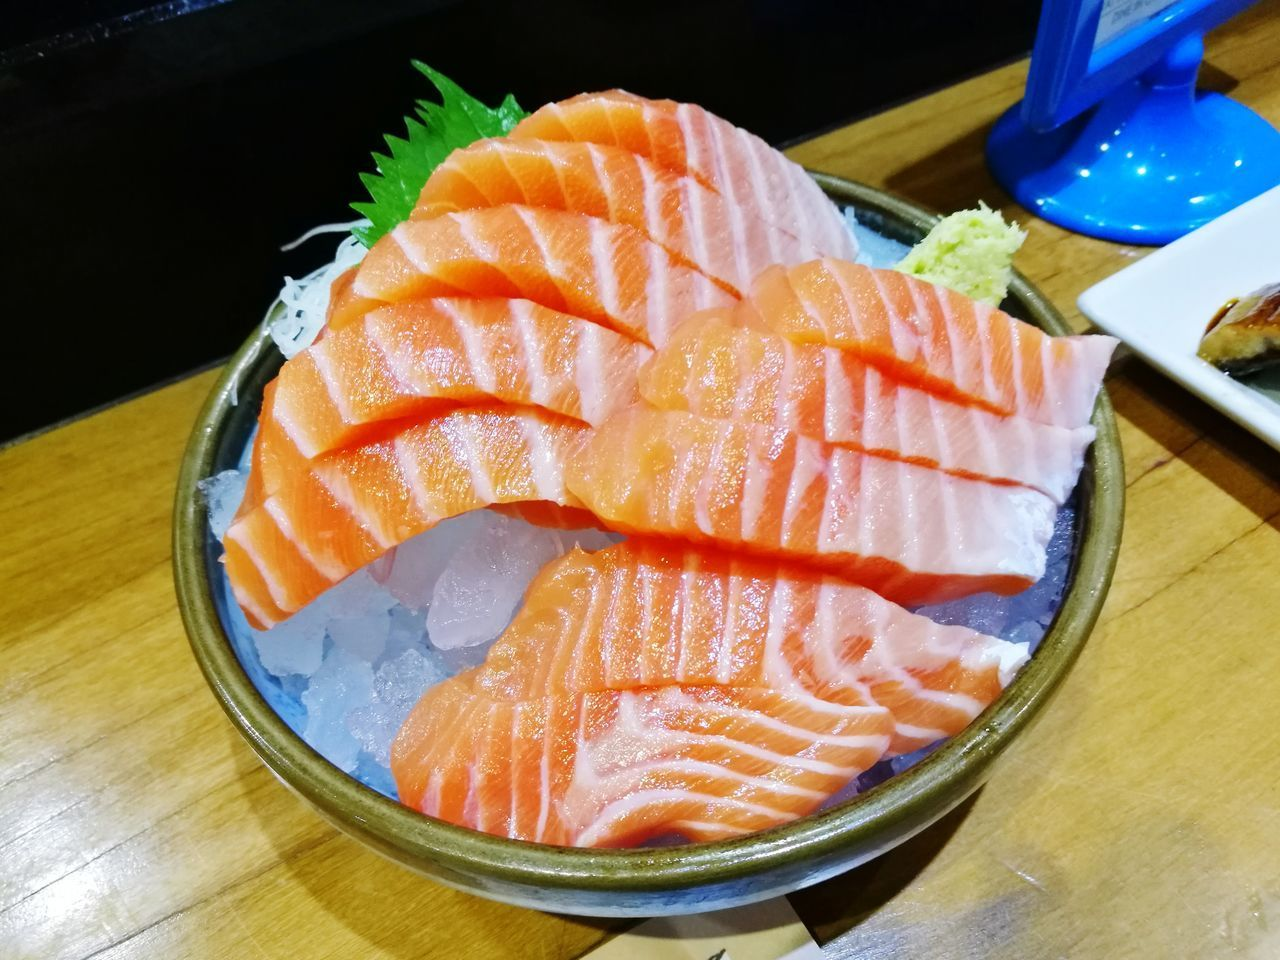 food and drink, food, freshness, table, healthy eating, wellbeing, japanese food, indoors, high angle view, still life, close-up, seafood, asian food, salmon - seafood, fish, plate, no people, orange color, ready-to-eat, raw food, sashimi, tray, temptation